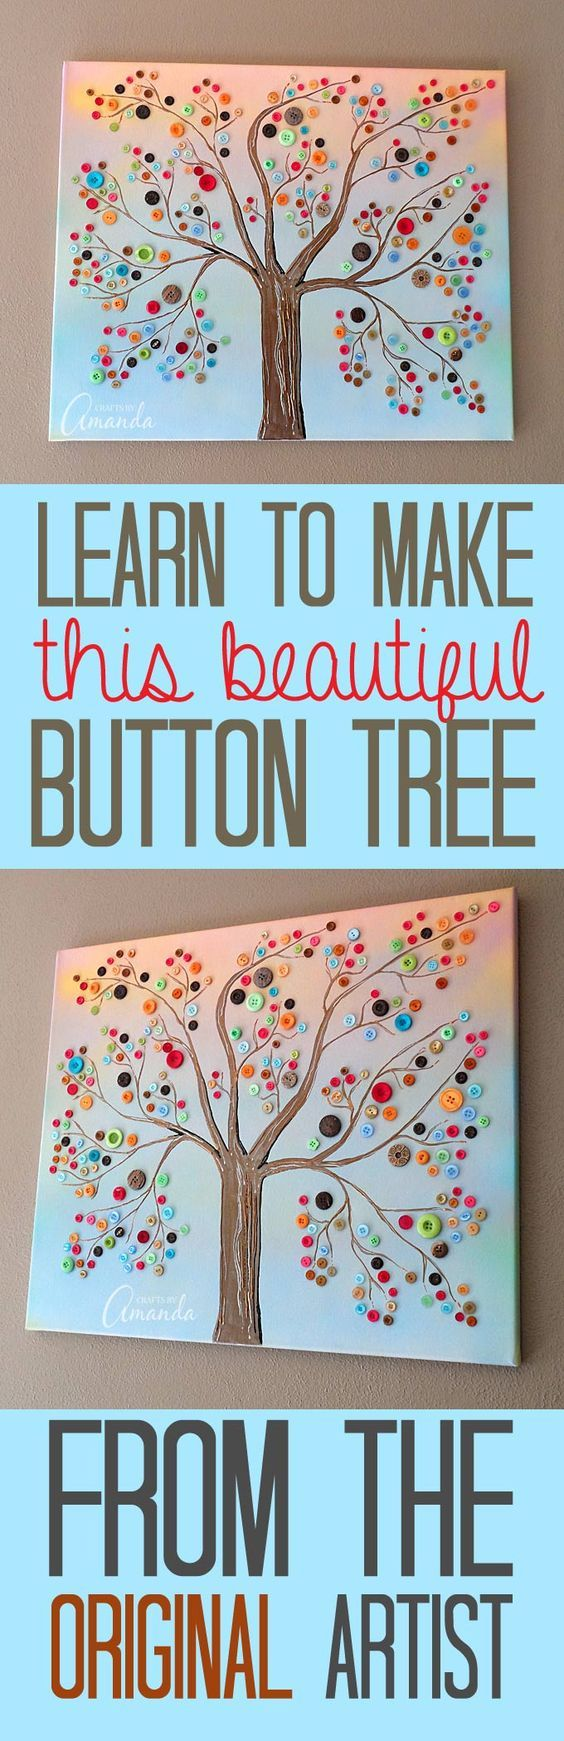 Learn how to make this vibrant button tree - by Amanda Formaro of Crafts by Amanda: